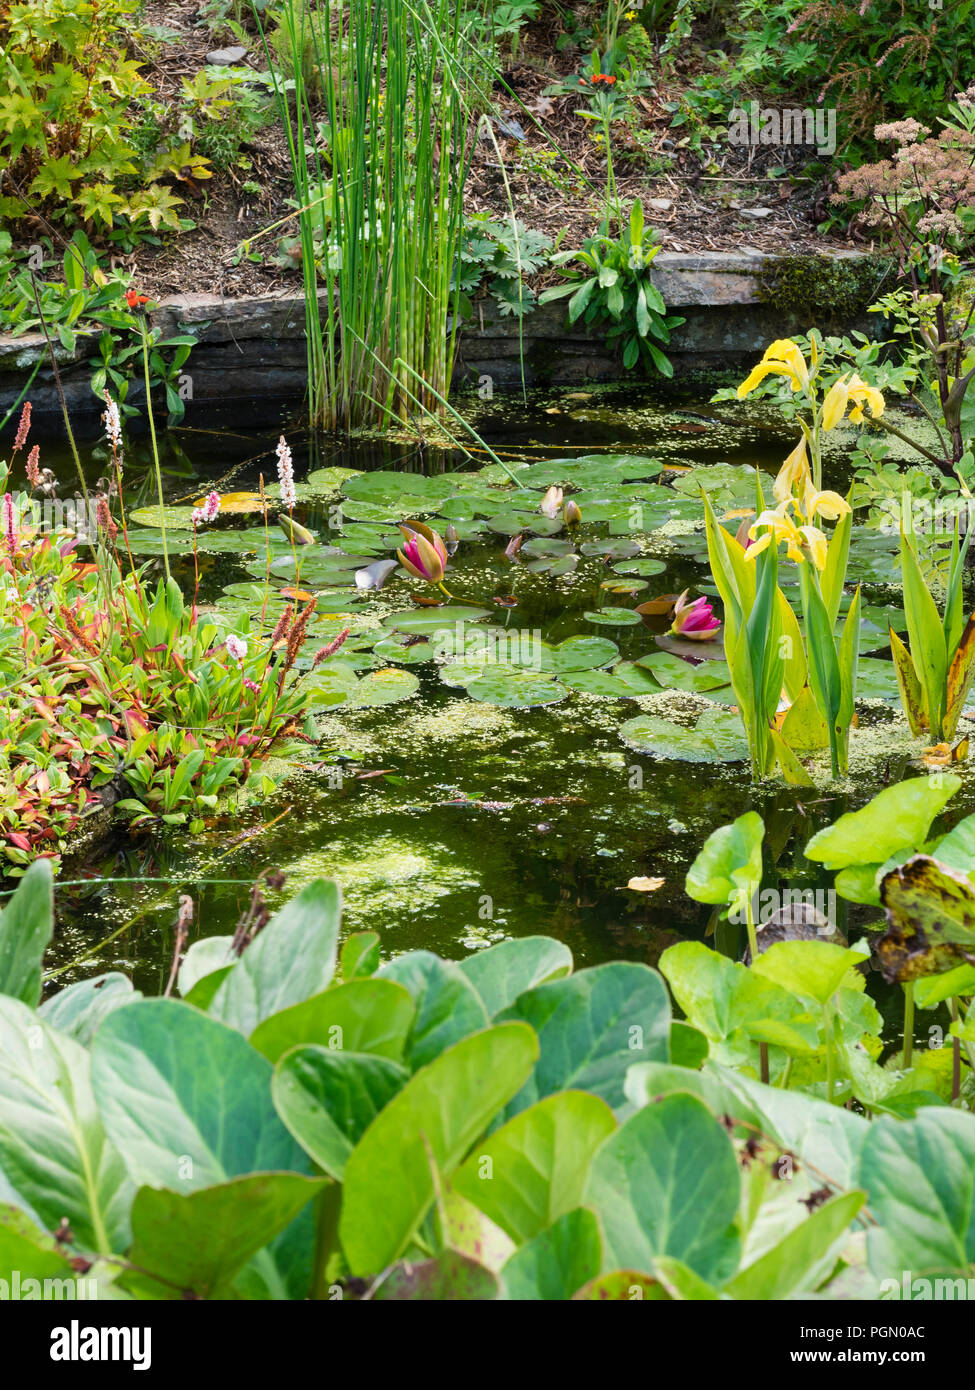 Small pond with rocky edges at The Garden House, Buckland Monachorum.  Yellow Canna 'Ra' provides long flowering interest. - Stock Image